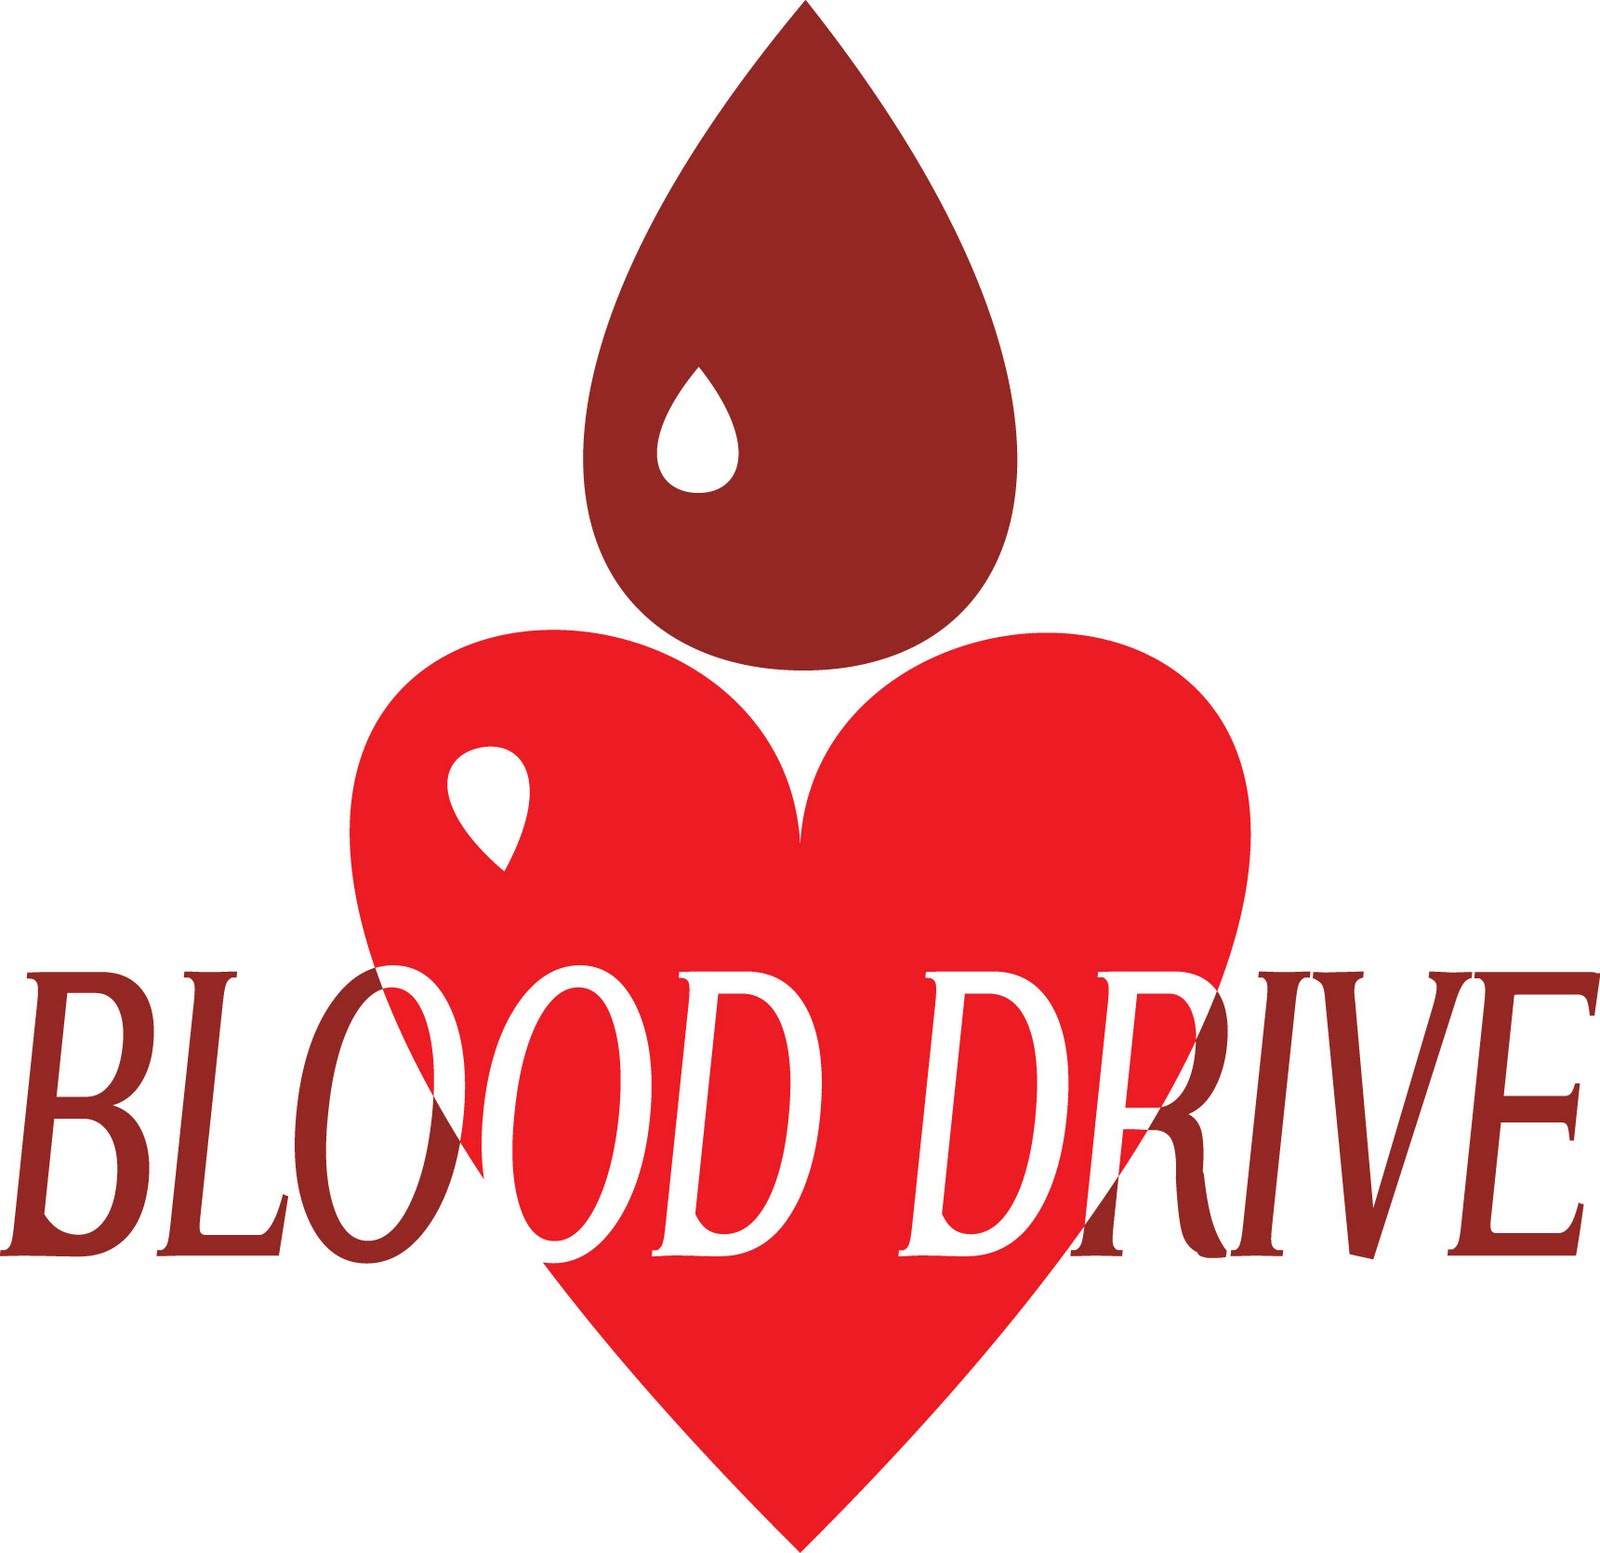 ... Blood Drive Thank You Clipart ...-... Blood drive thank you clipart ...-8